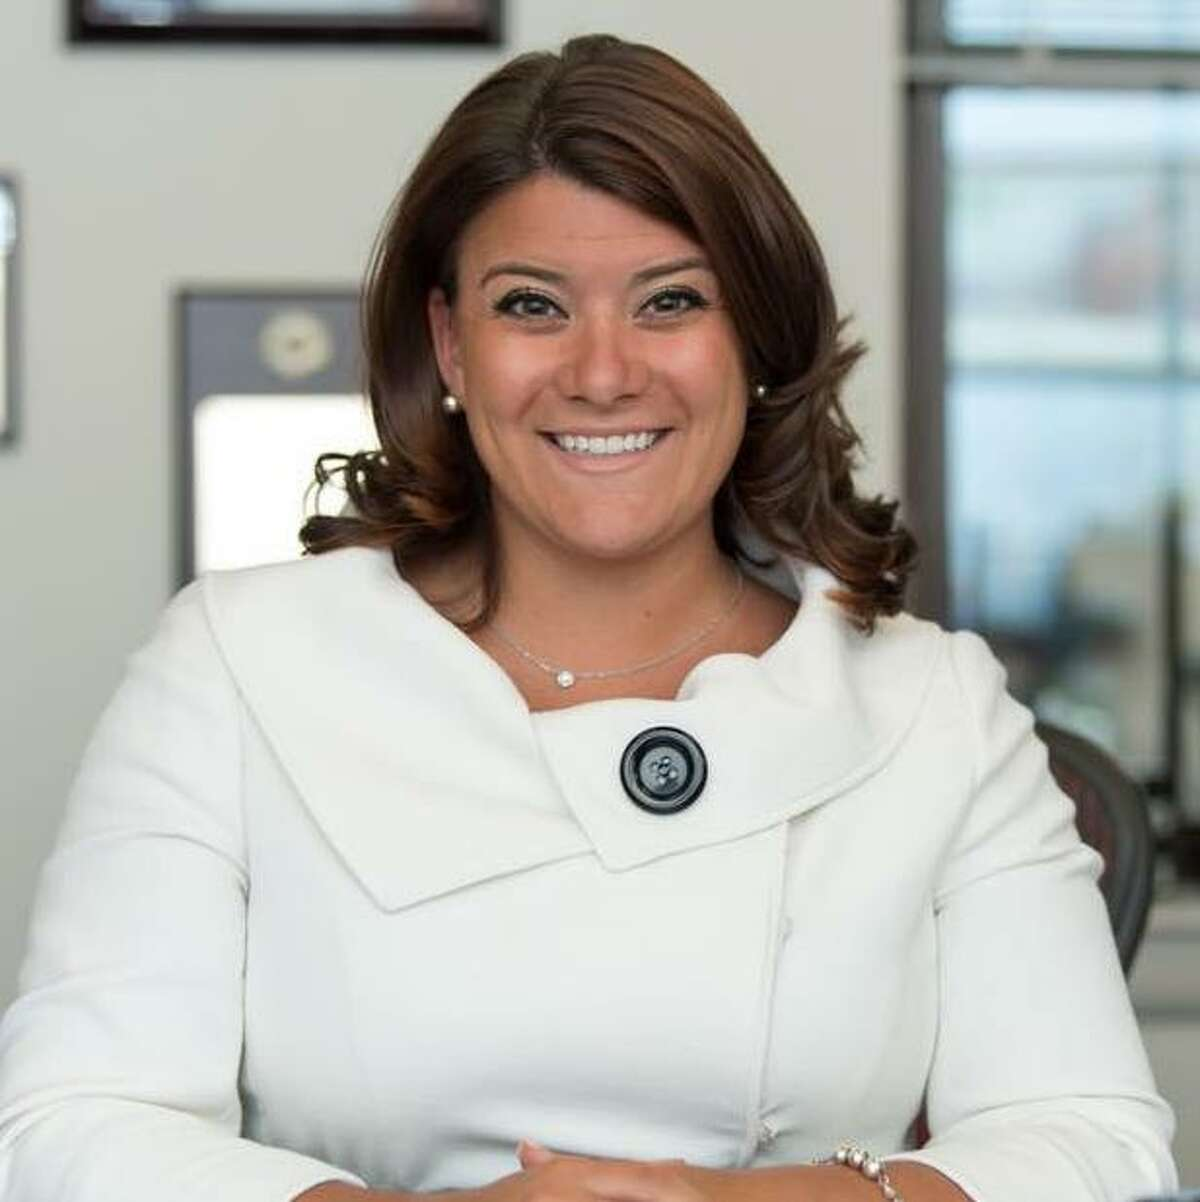 Erin Stewart, Republican Mayor of New Britain, candidate for Governor 2018.